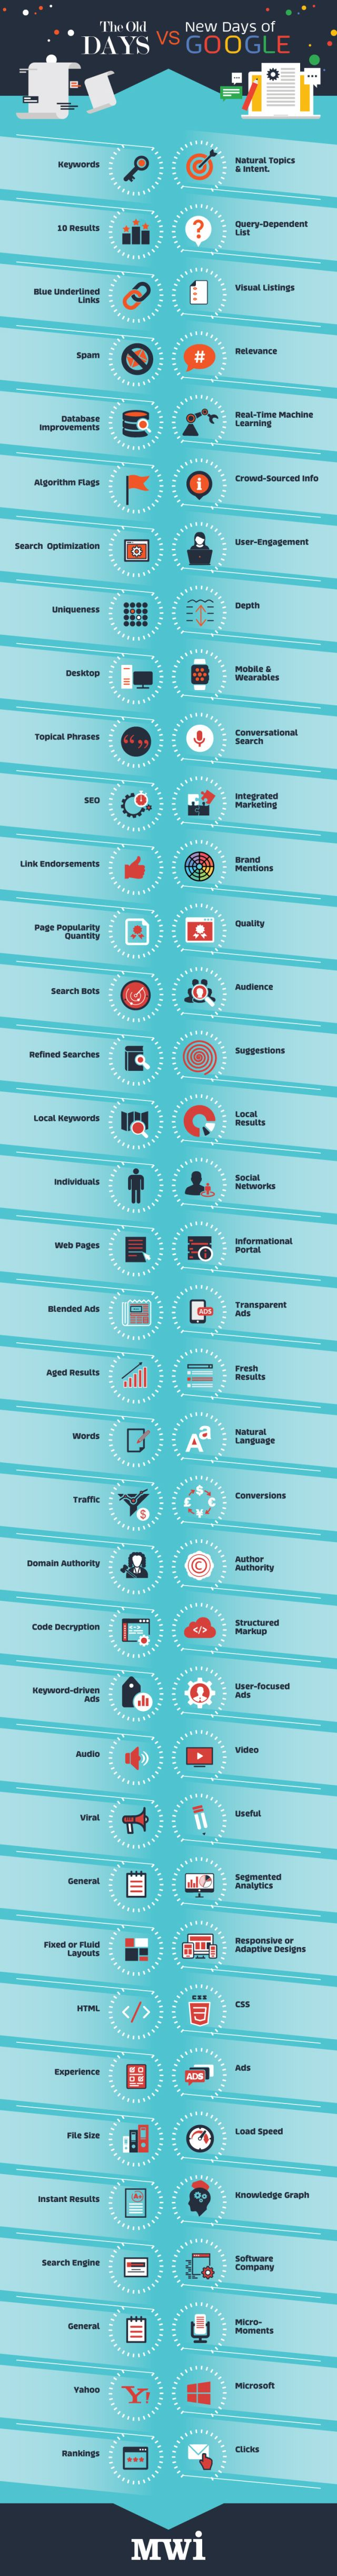 Old SEO vs SEO in 2016: What Google Wants You to Focus on This Year #Infographic #mystechdynamics #seo